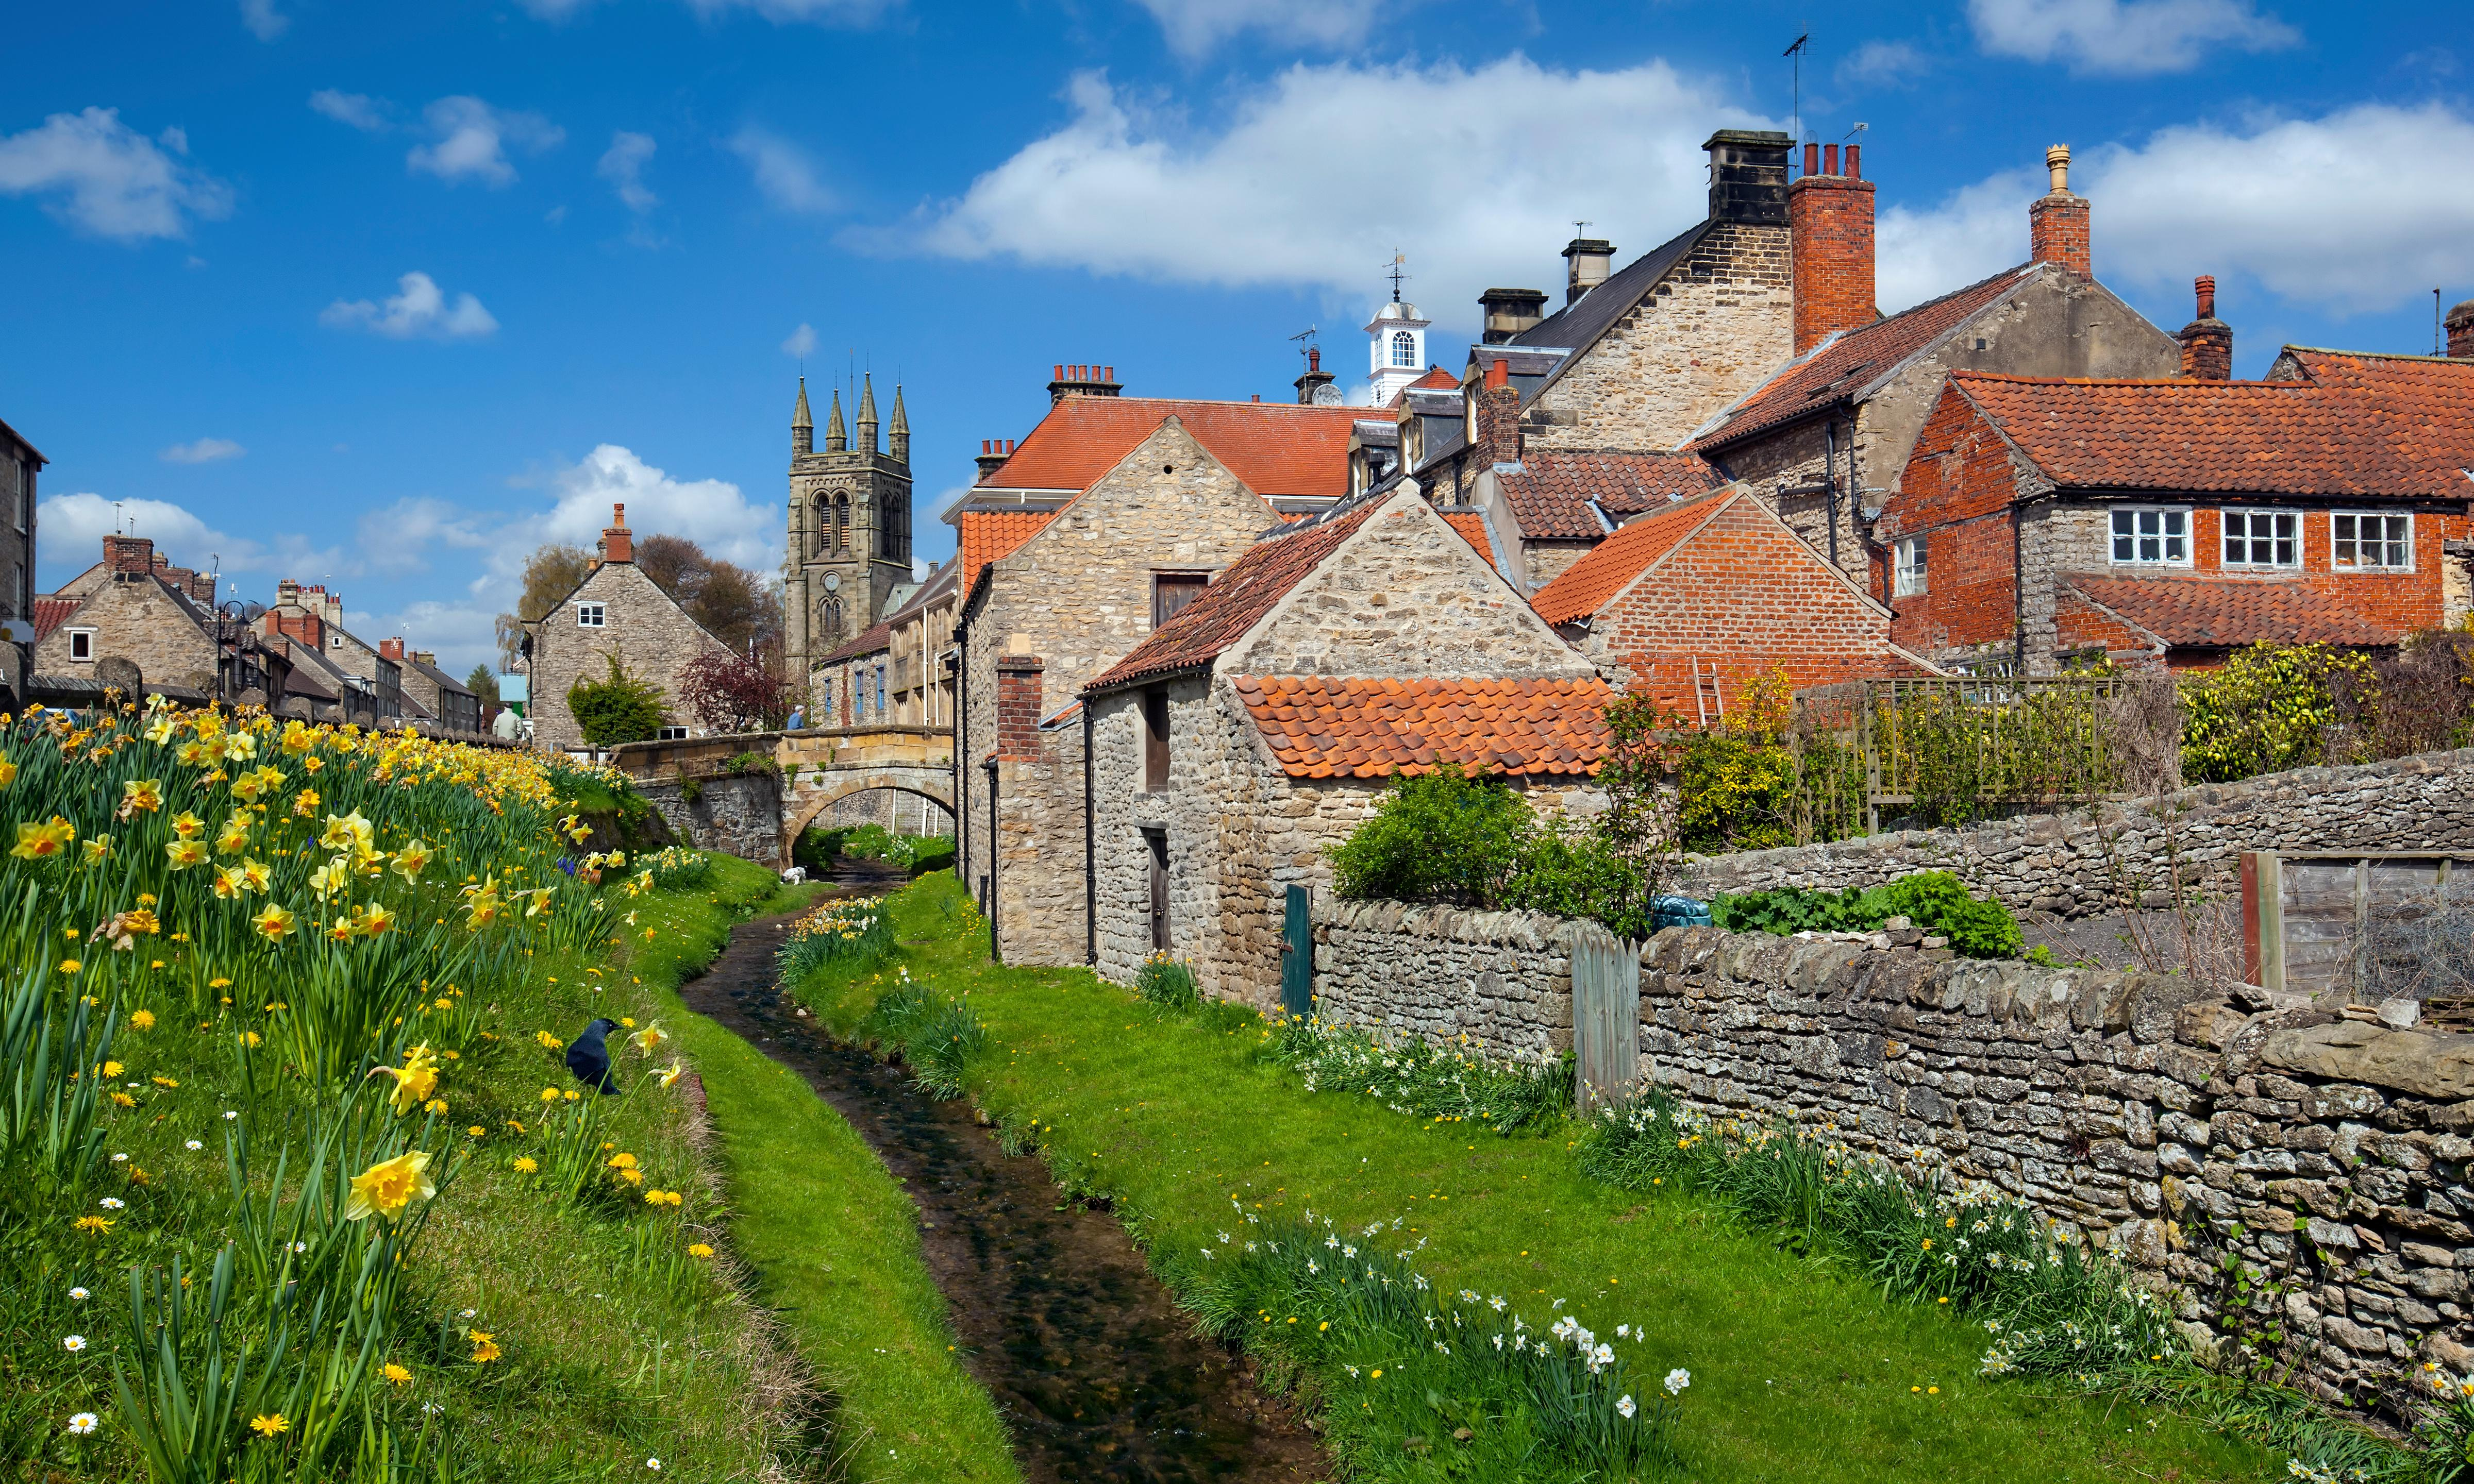 Let's move to Helmsley, North Yorkshire: super sweet and picture perfect